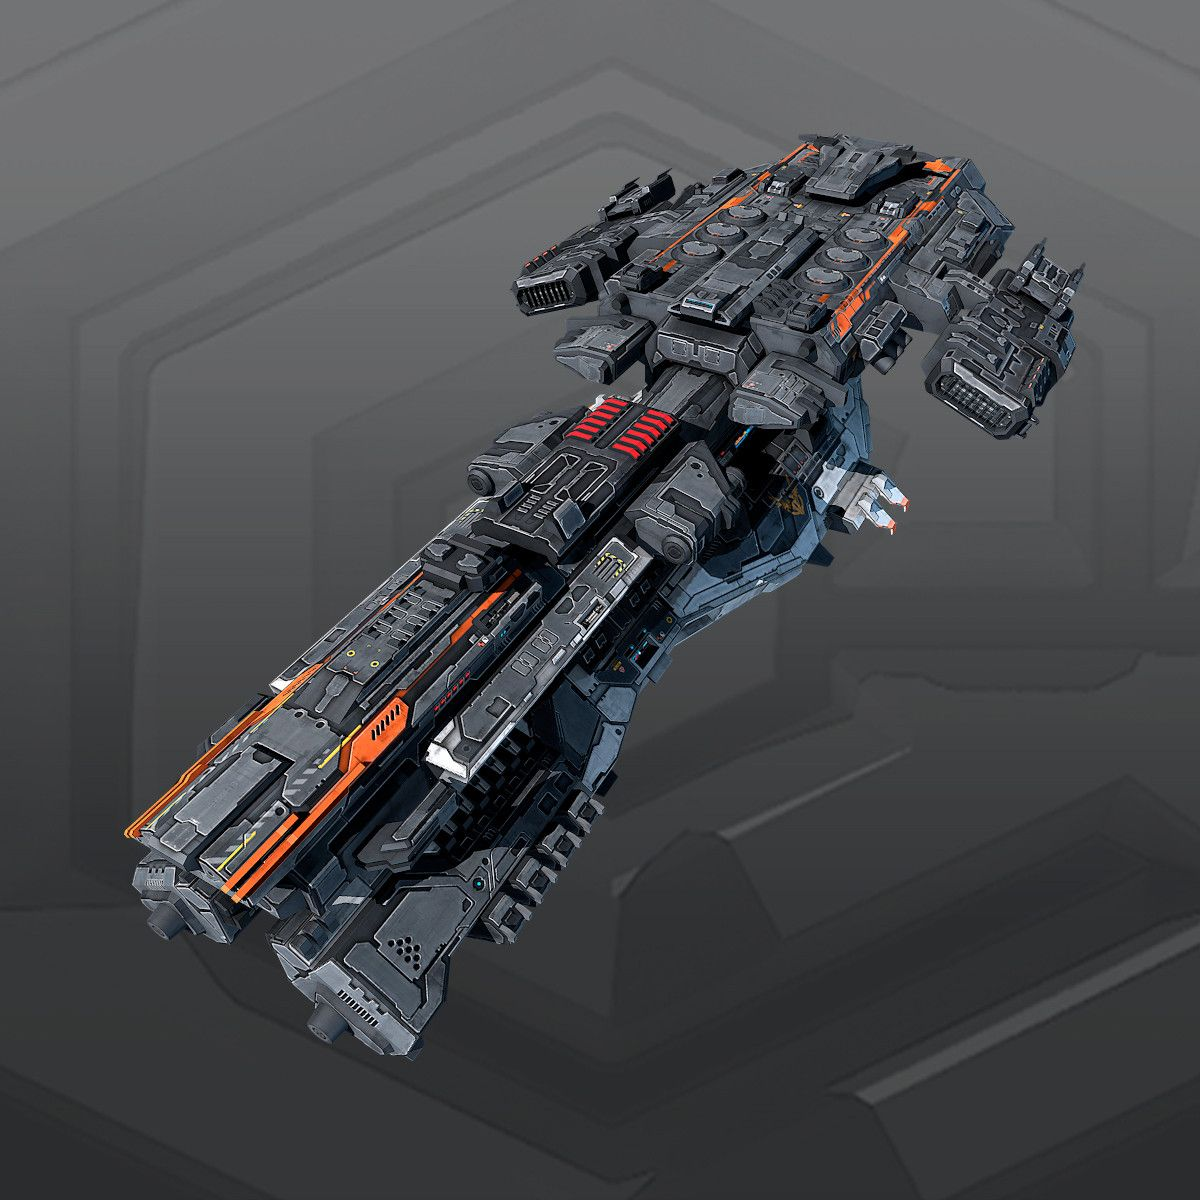 Space And Scifi Things With Zmodeler: Concept Art Tutorials///--- We Have More Tutorials And